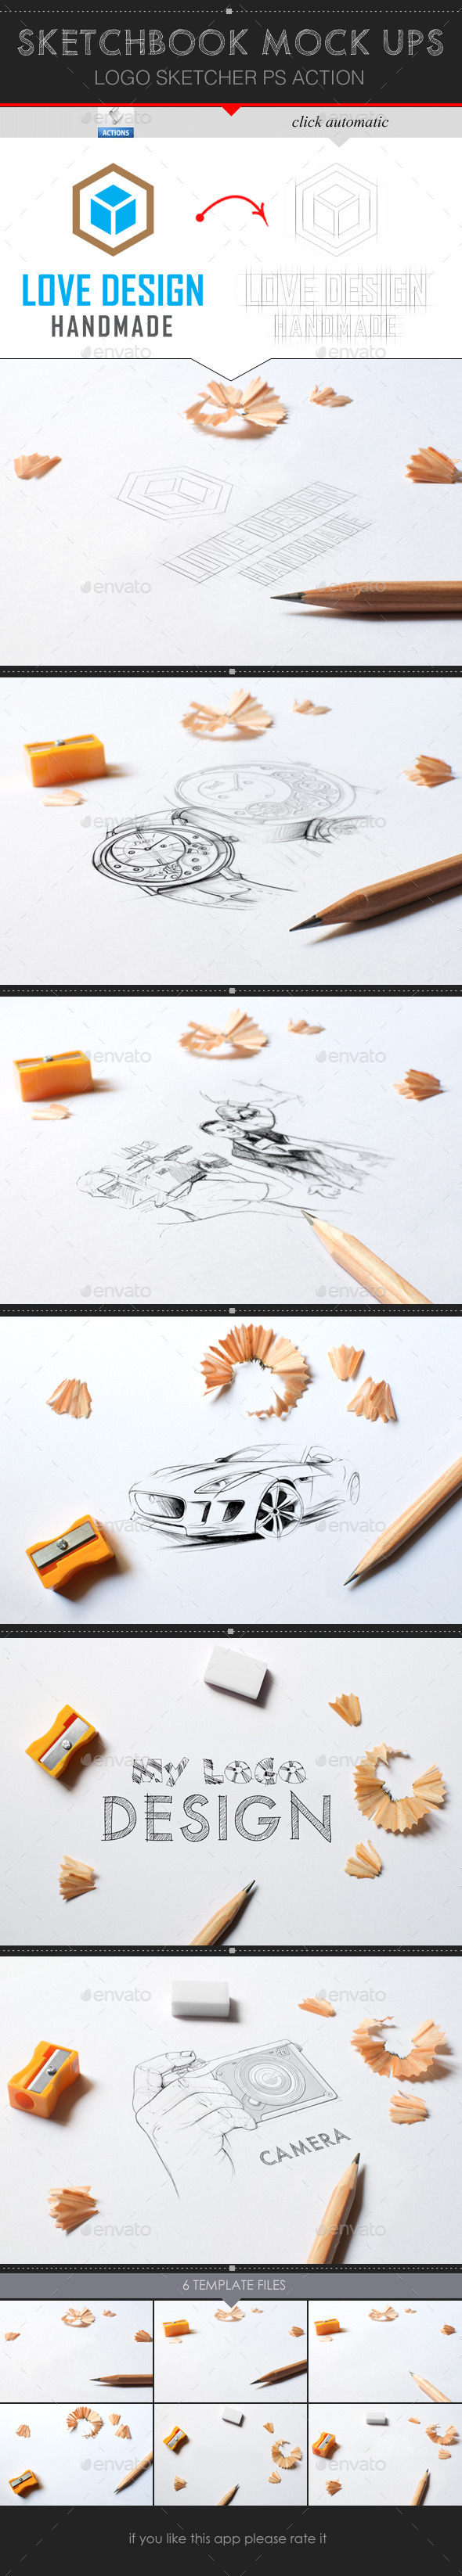 GraphicRiver Sketchbook Mock-Up 9910621